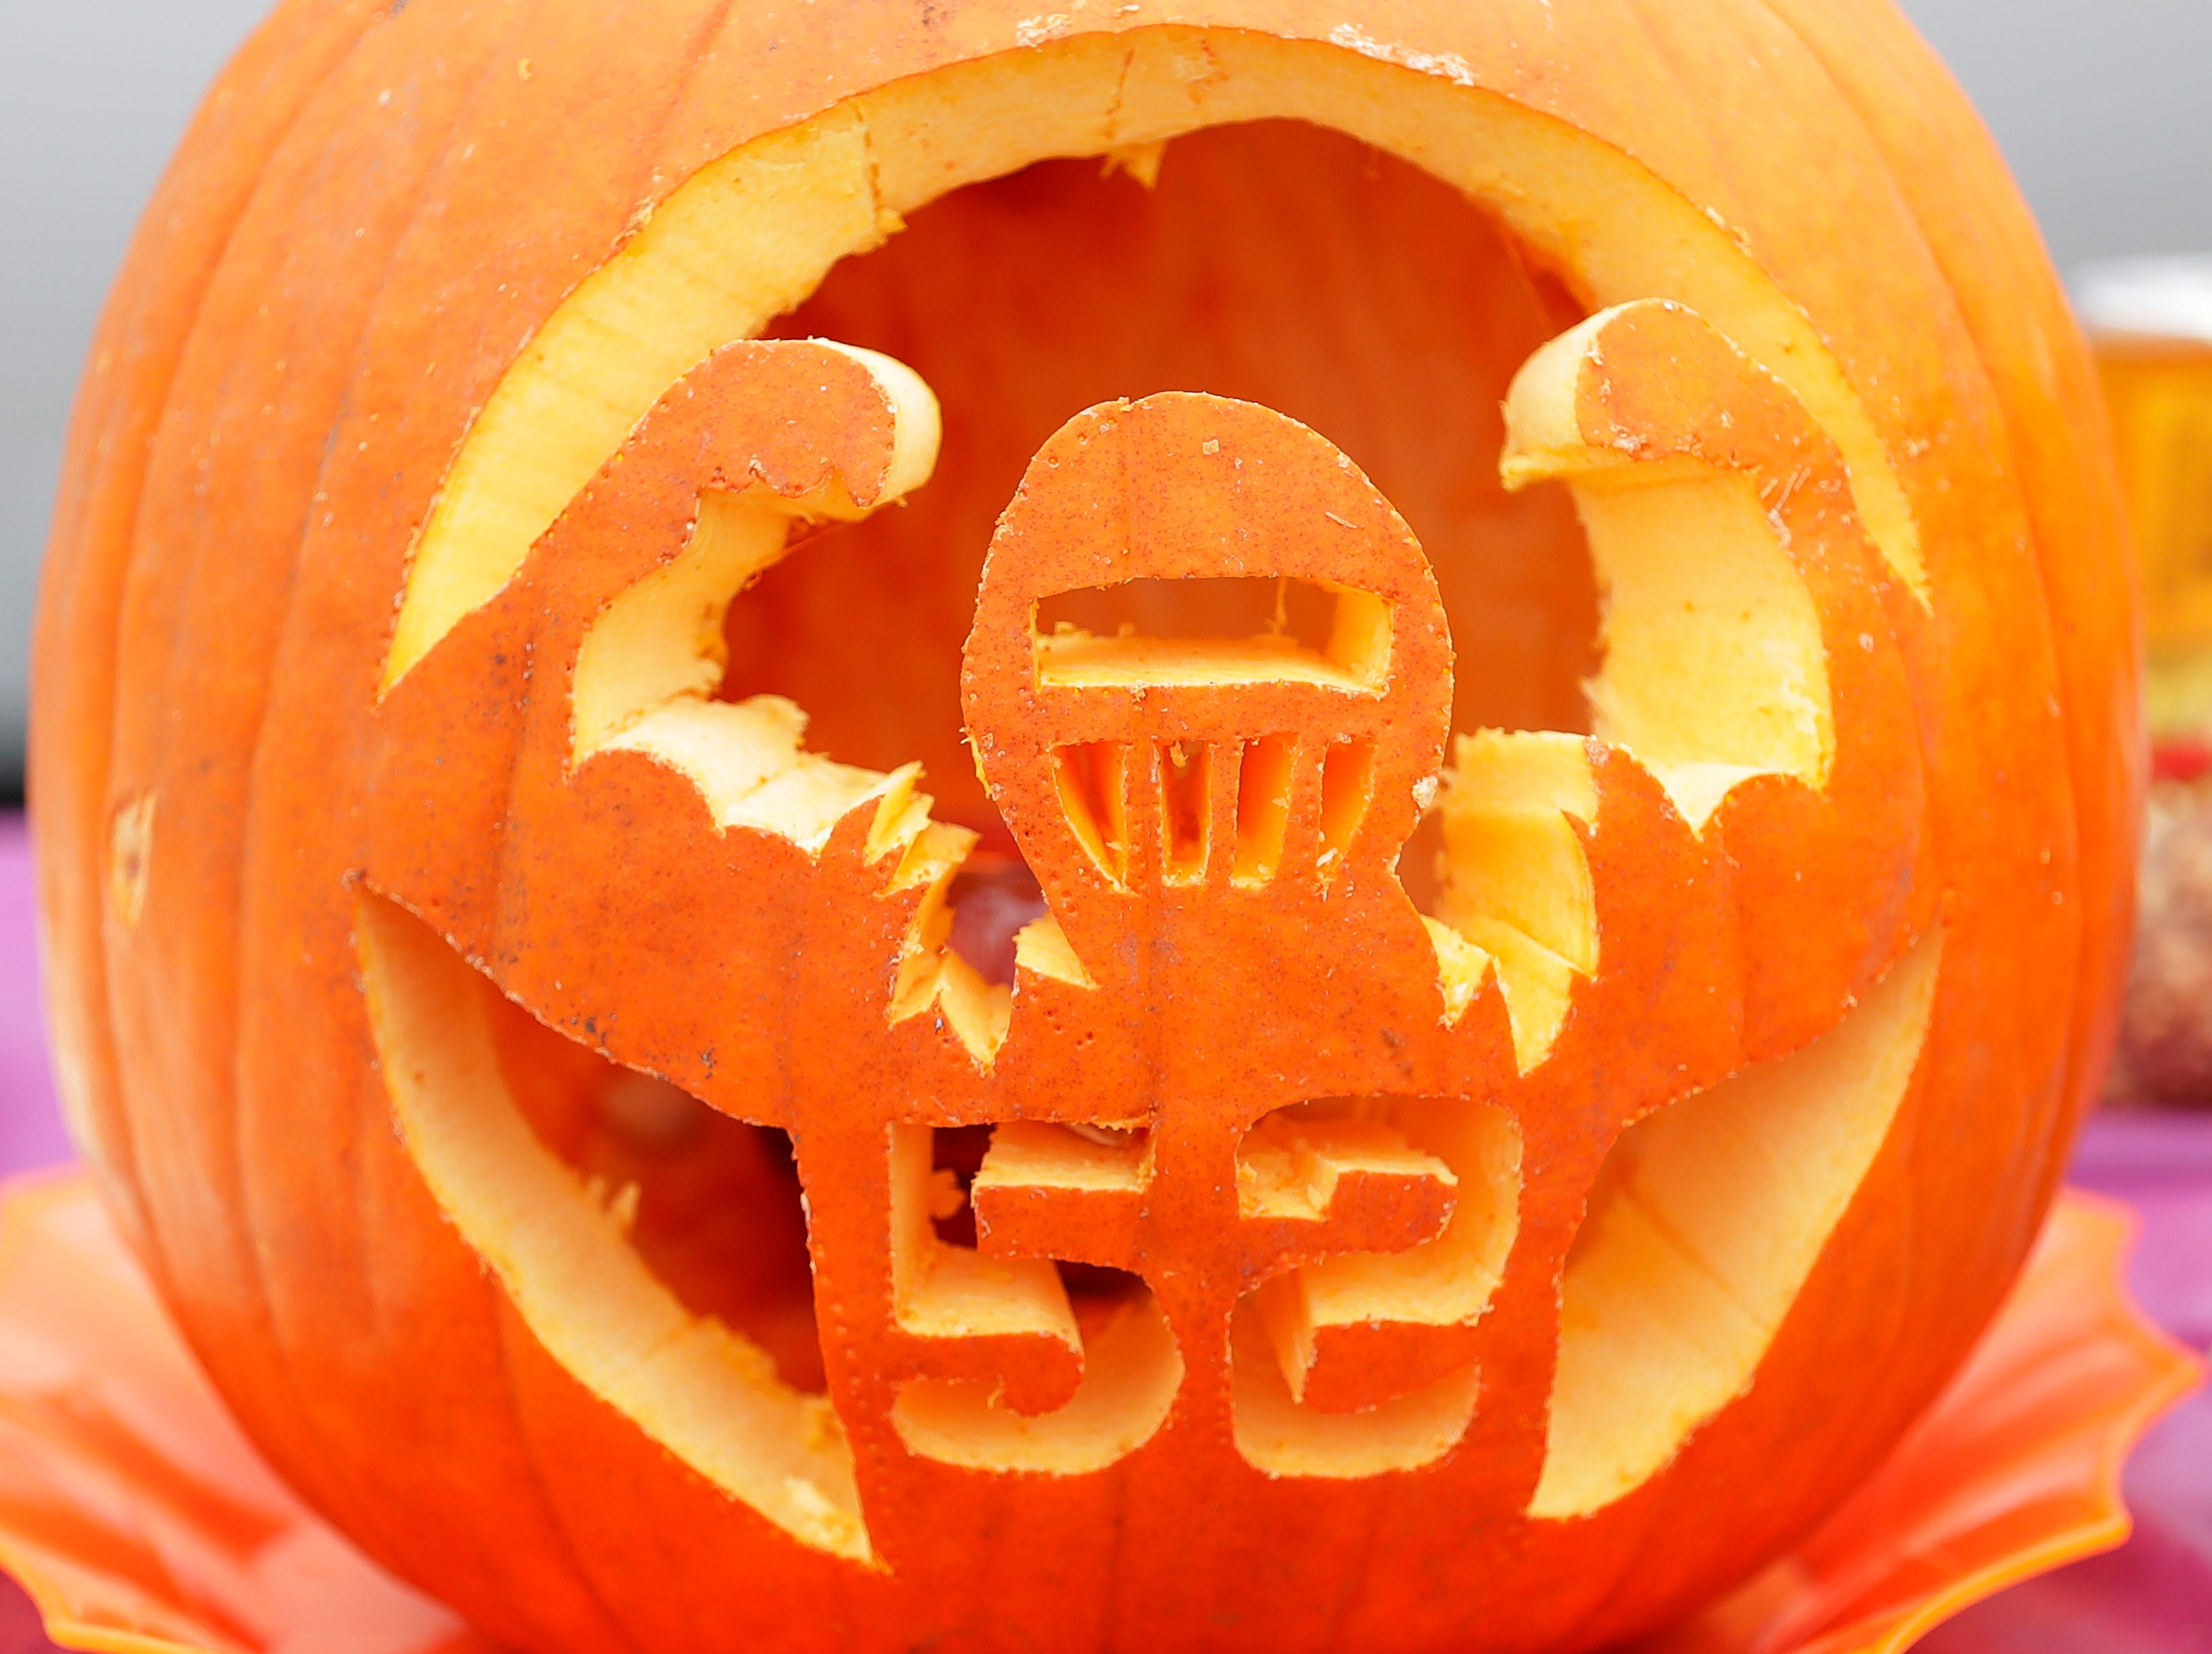 A Packers-themed pumpkin is displayed at a tailgate at Lambeau Field on Sunday, September 30, 2018 in Green Bay, Wis.